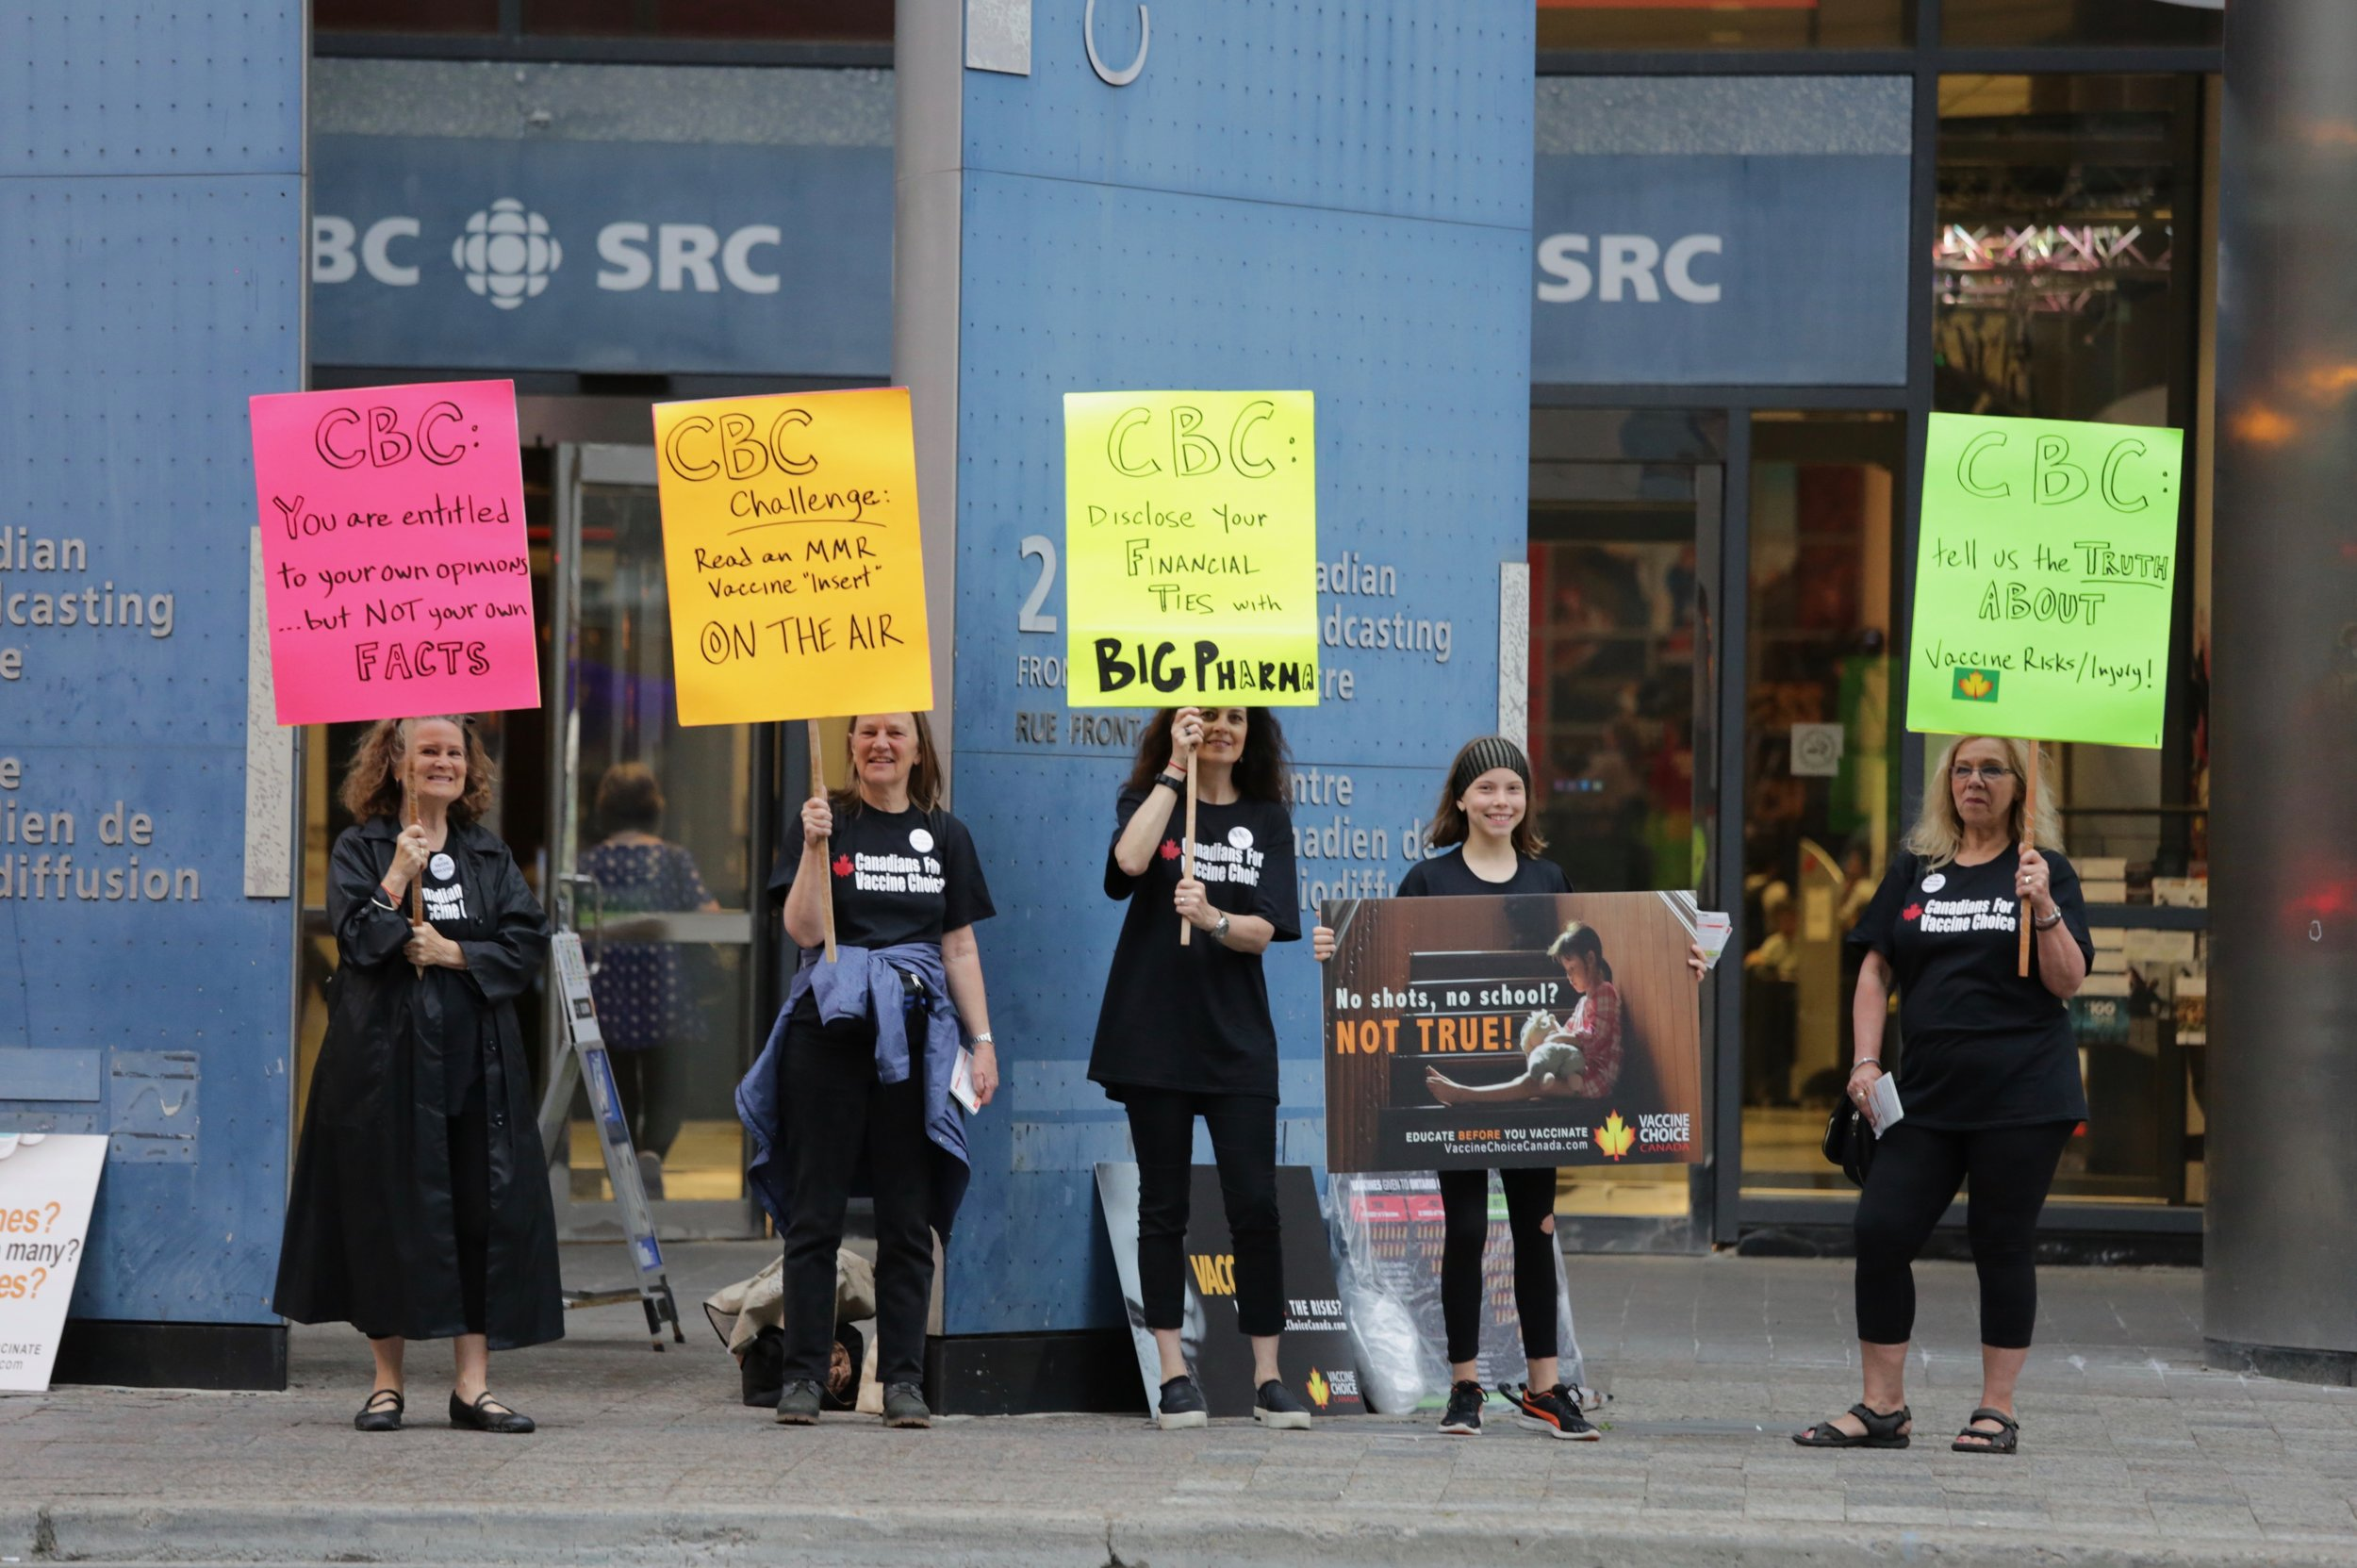 "The placards read, from left to right: CBC: You are entitled to your own opinions … but not your own facts; CBC Challenge: Read an MMR vaccine ""insert"" ON THE AIR; CBC: Disclose your financial ties with Big Pharma; No Shots, No School? NOT TRUE!; & CBC: Tell us the truth about vaccine risks/injury!"